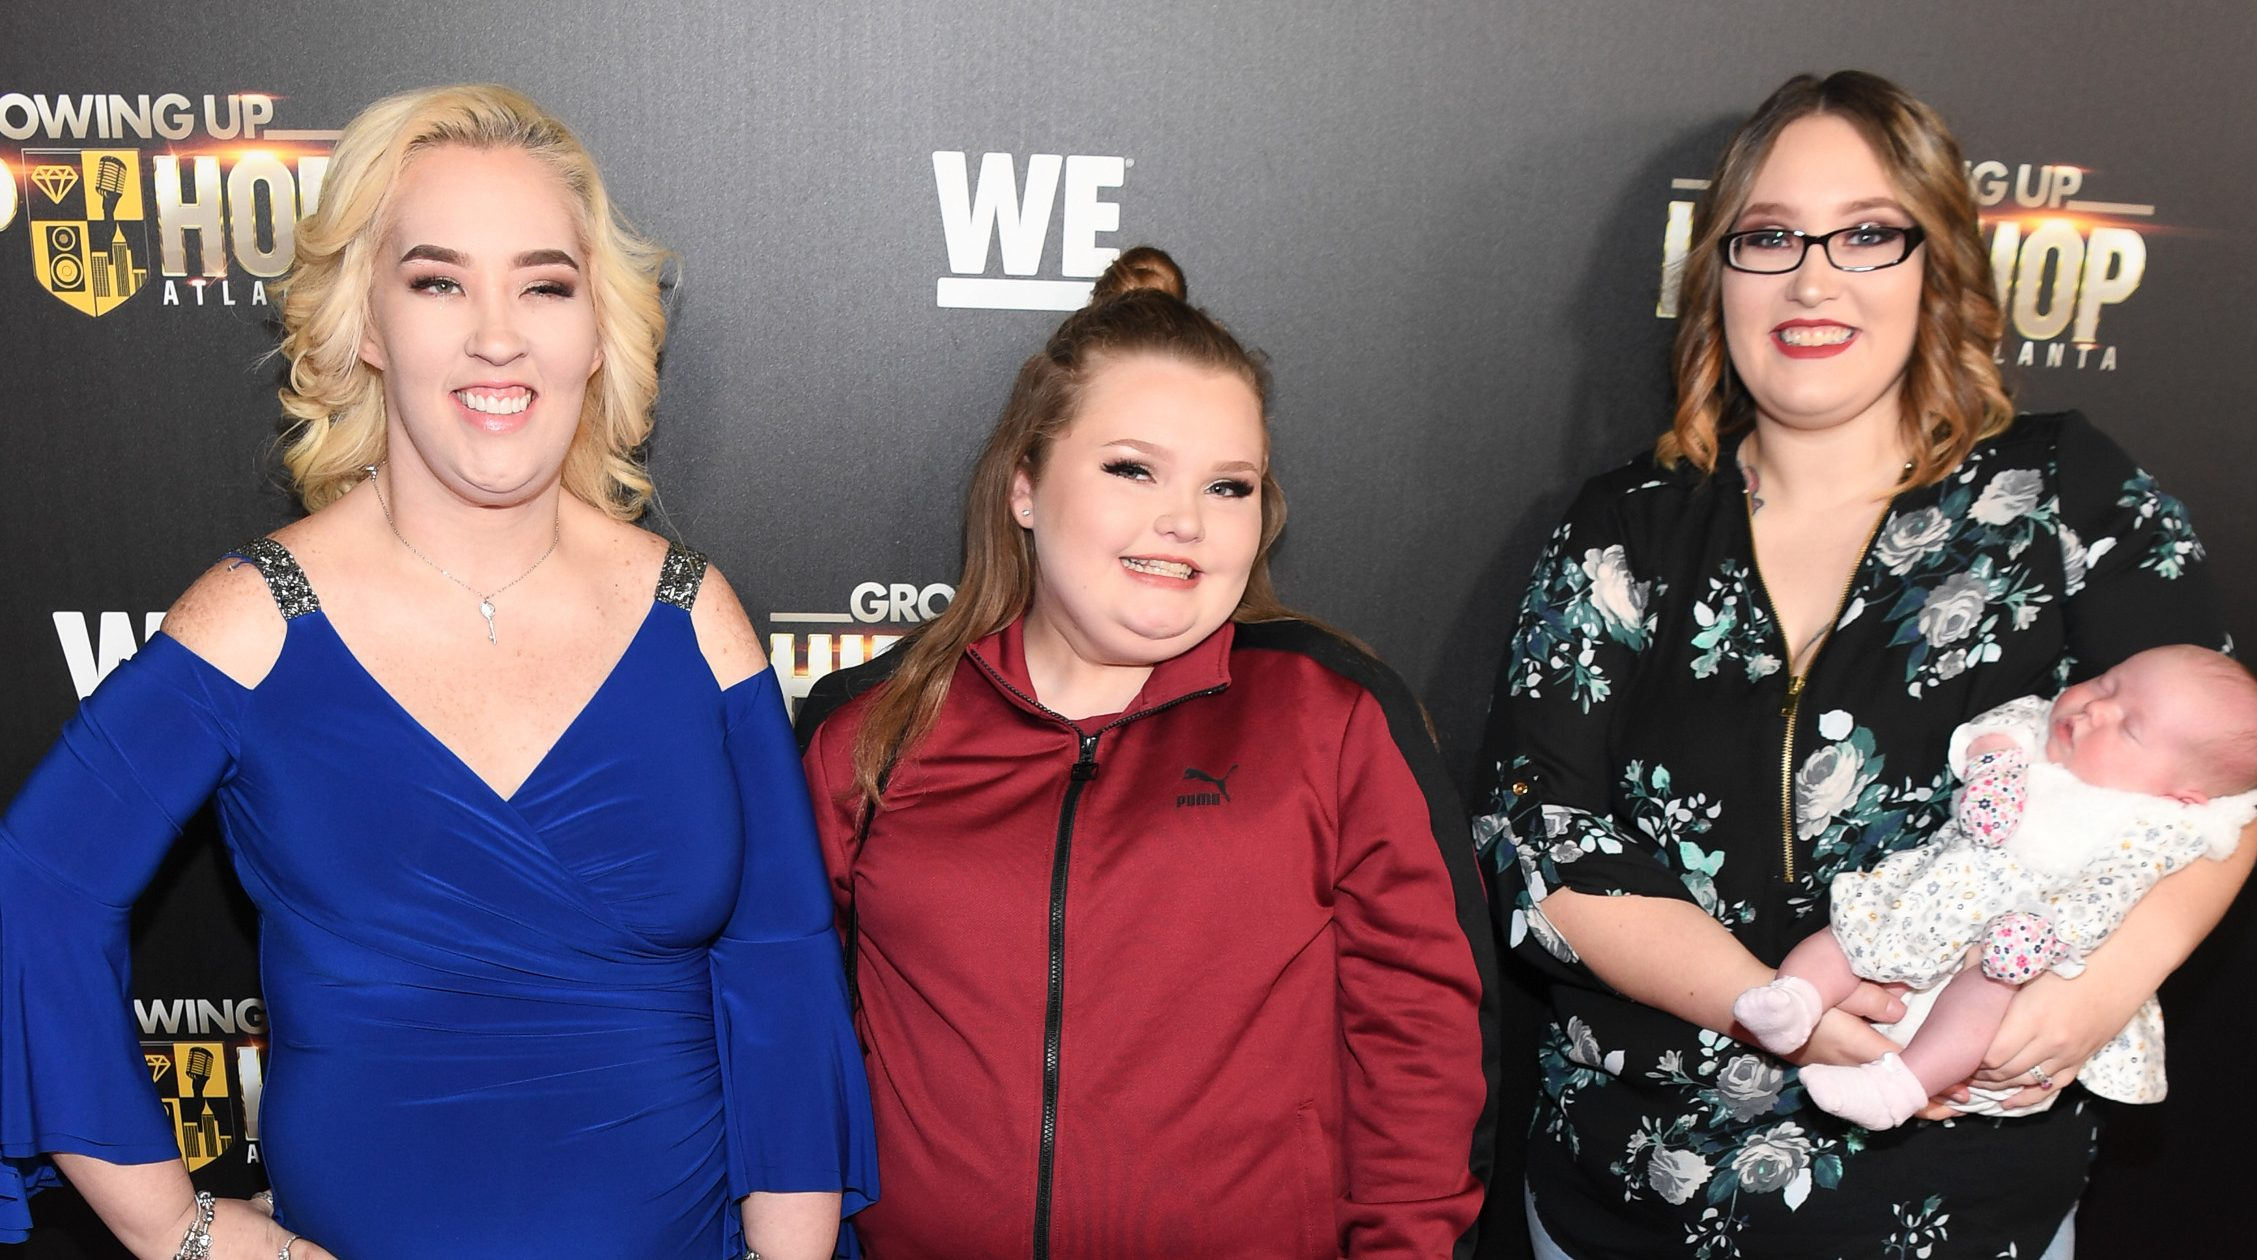 Mama June's daughter Pumpkin breaks silence on Not To Hot star's drug arrest